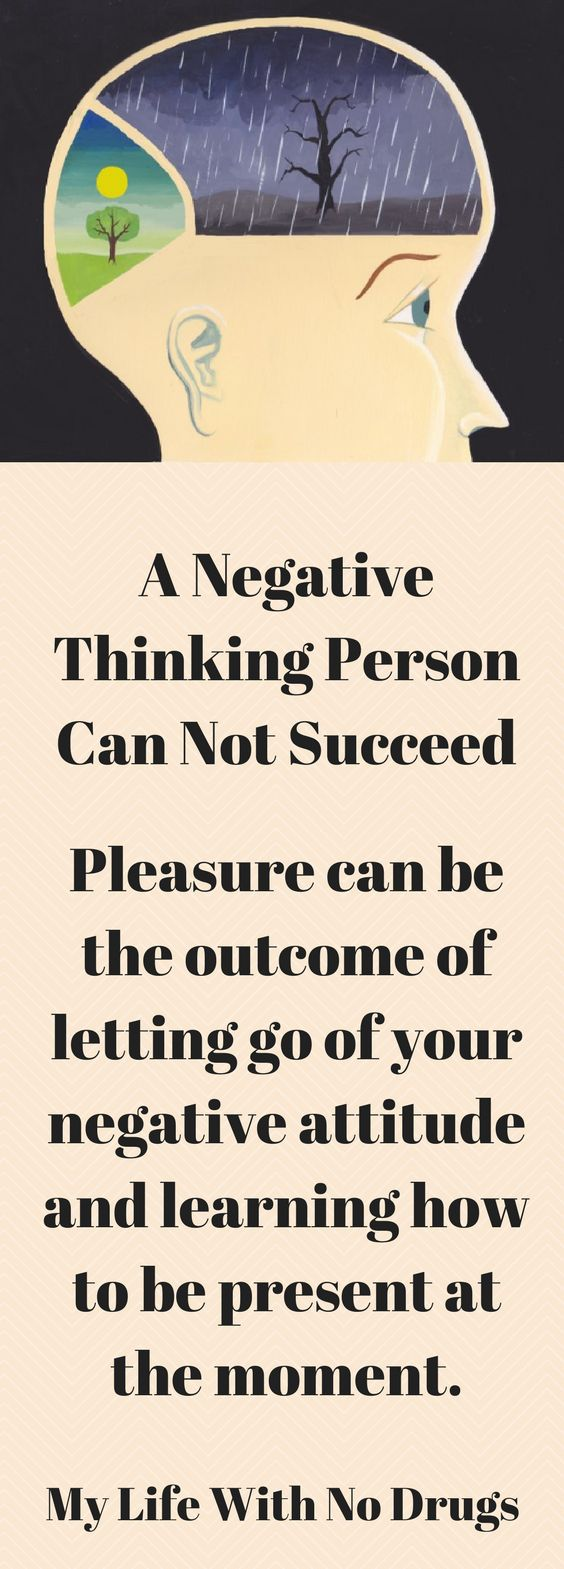 A #negativethinking Person Can Not #succeed #negativethinker #positivethinking